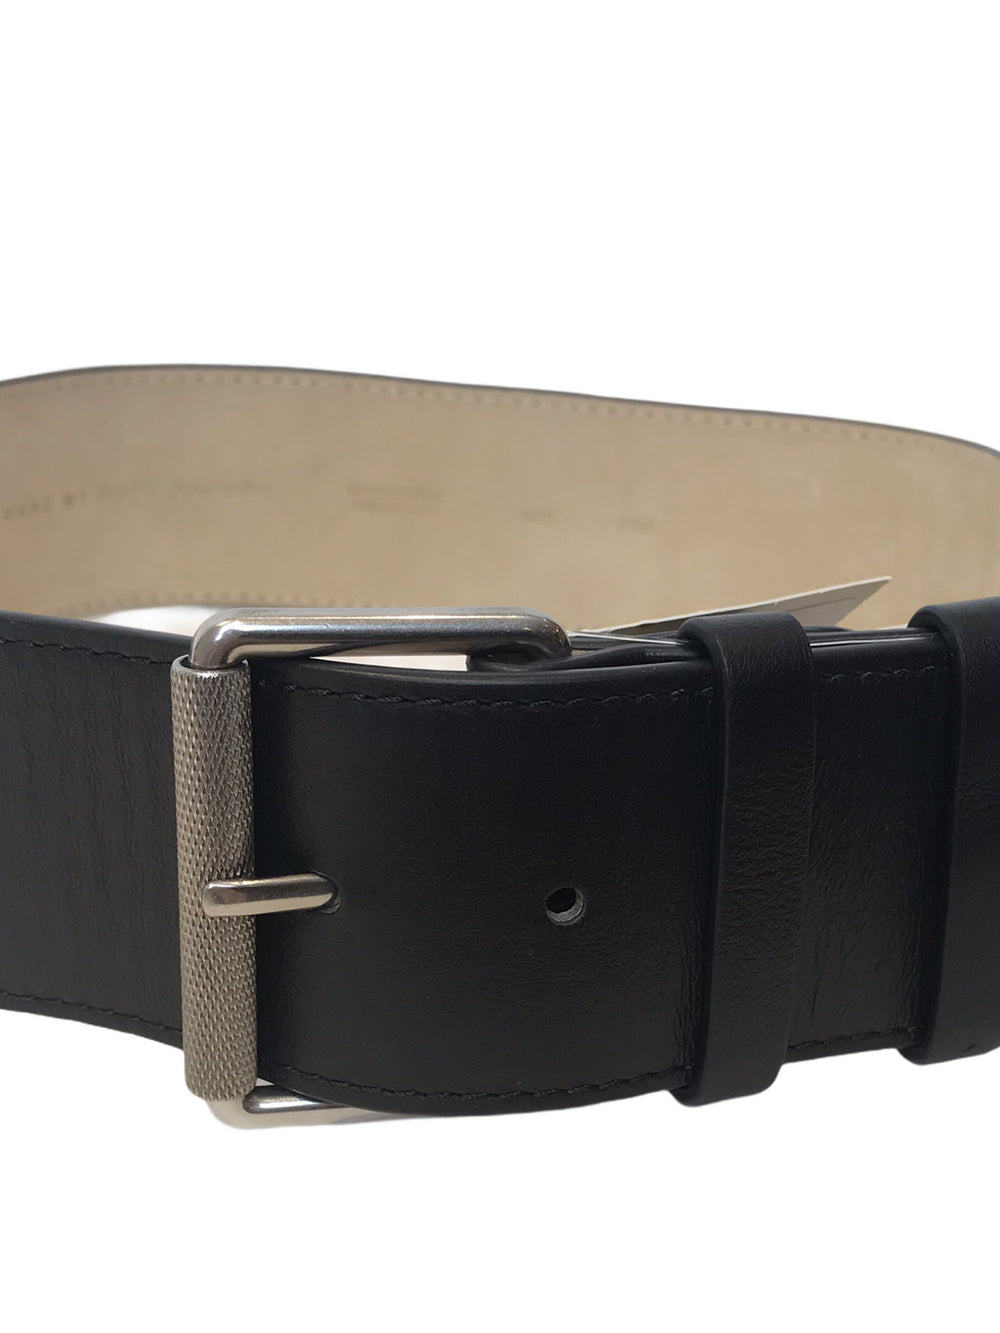 Marc by Marc Jacobs Black Belt - Size XS - As Seen on Instagram